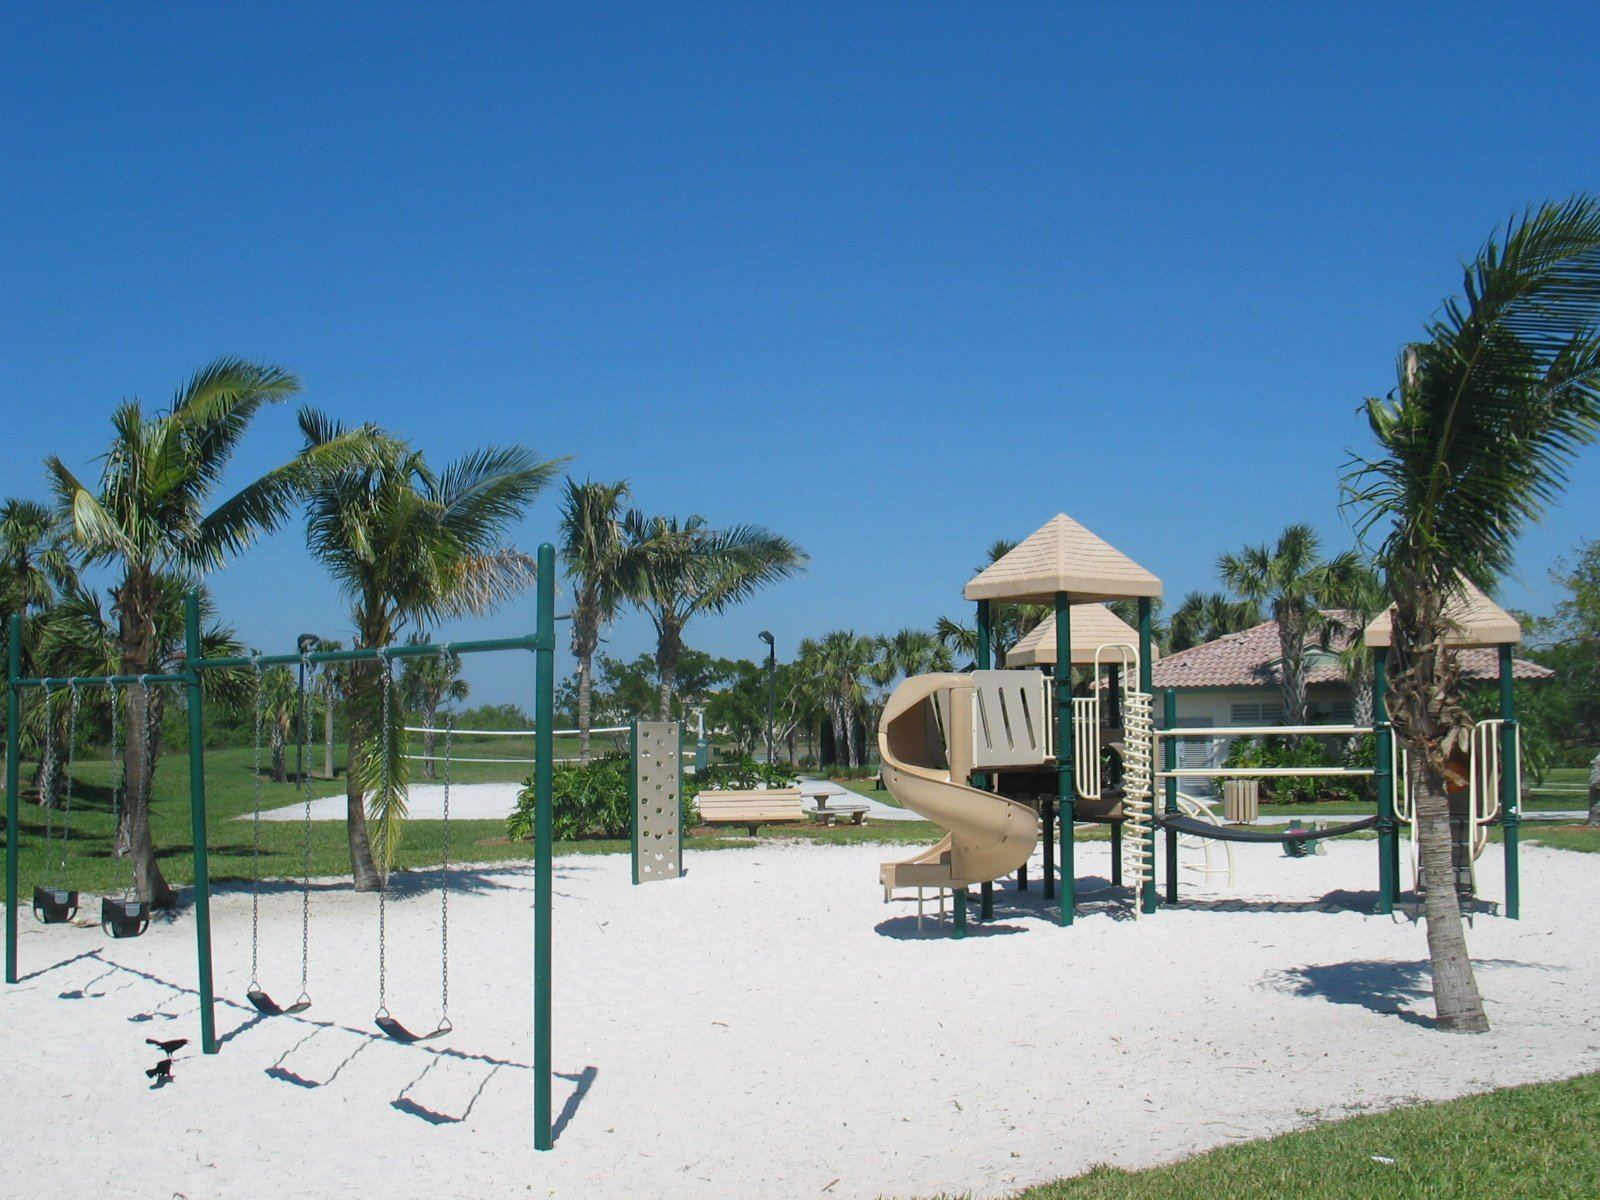 Heron Bay playground